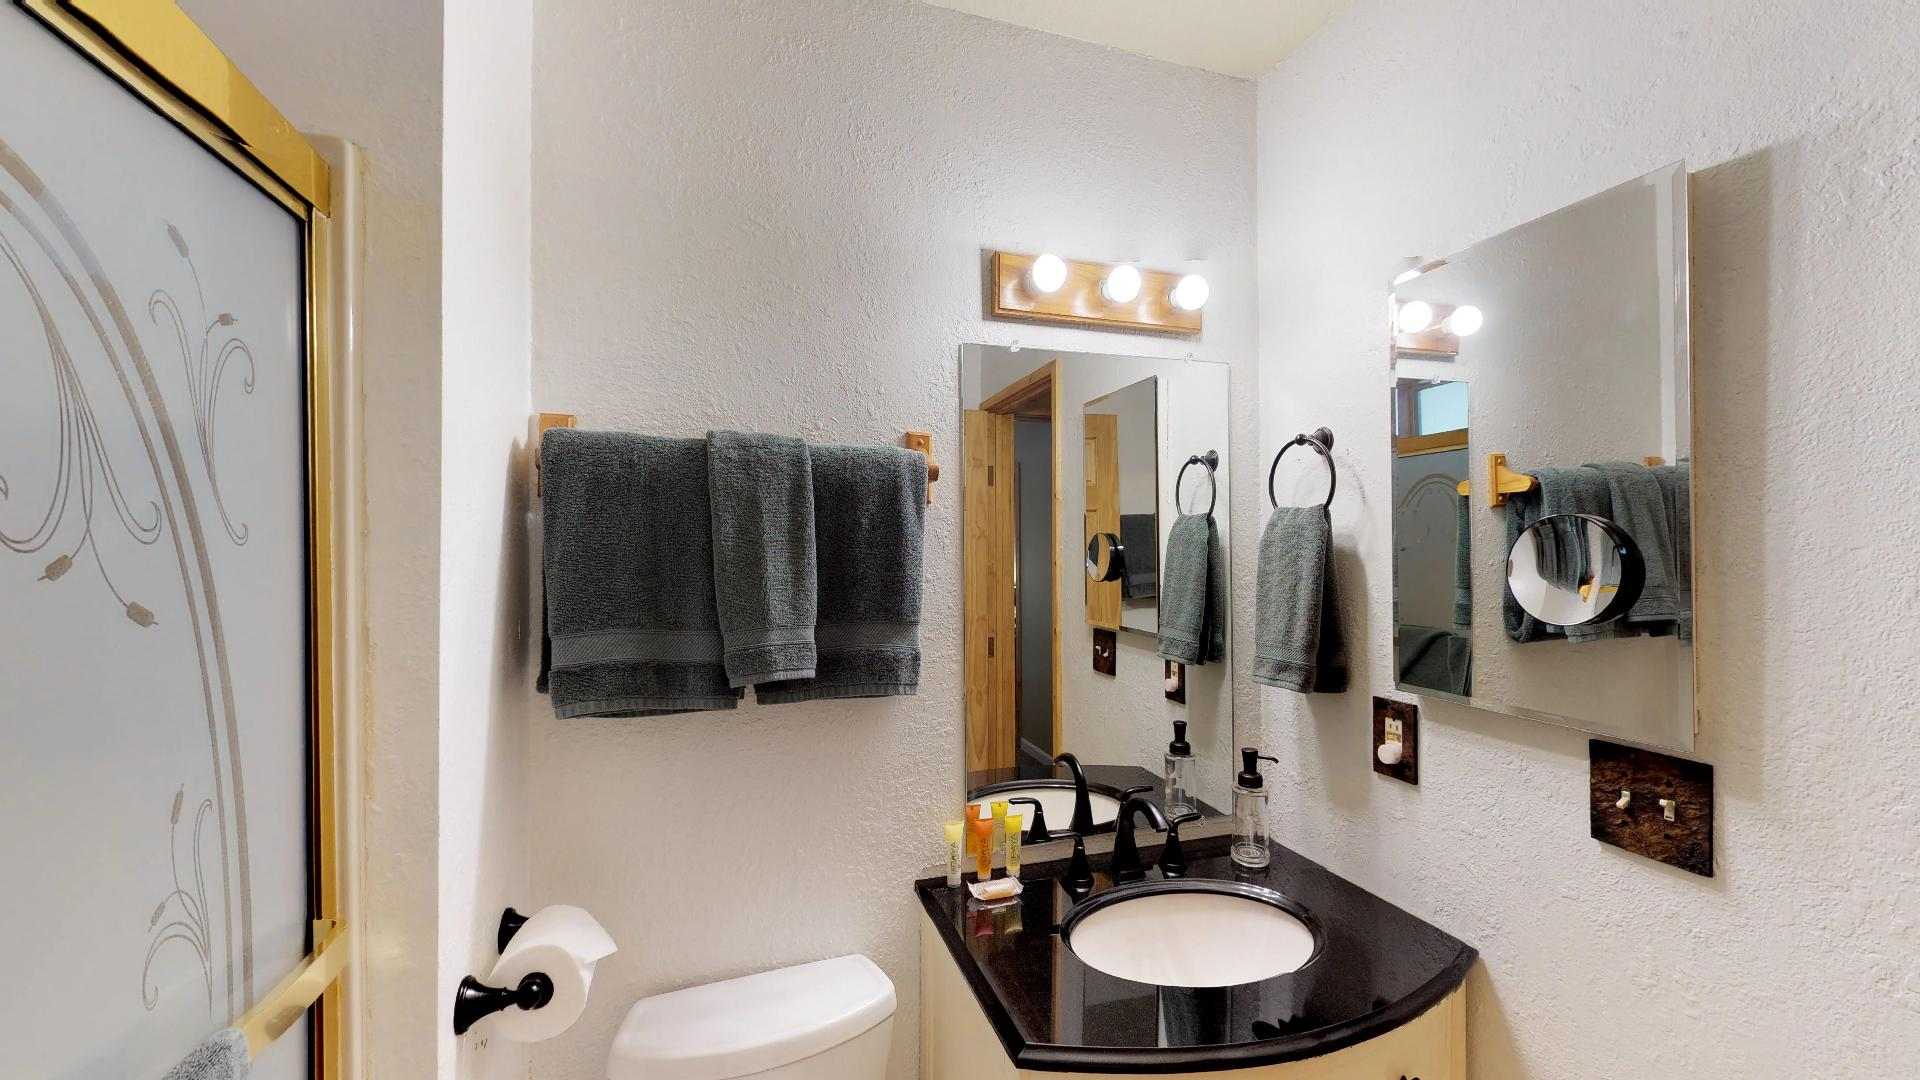 Bathrooms Come Equipped with Linens for Guests